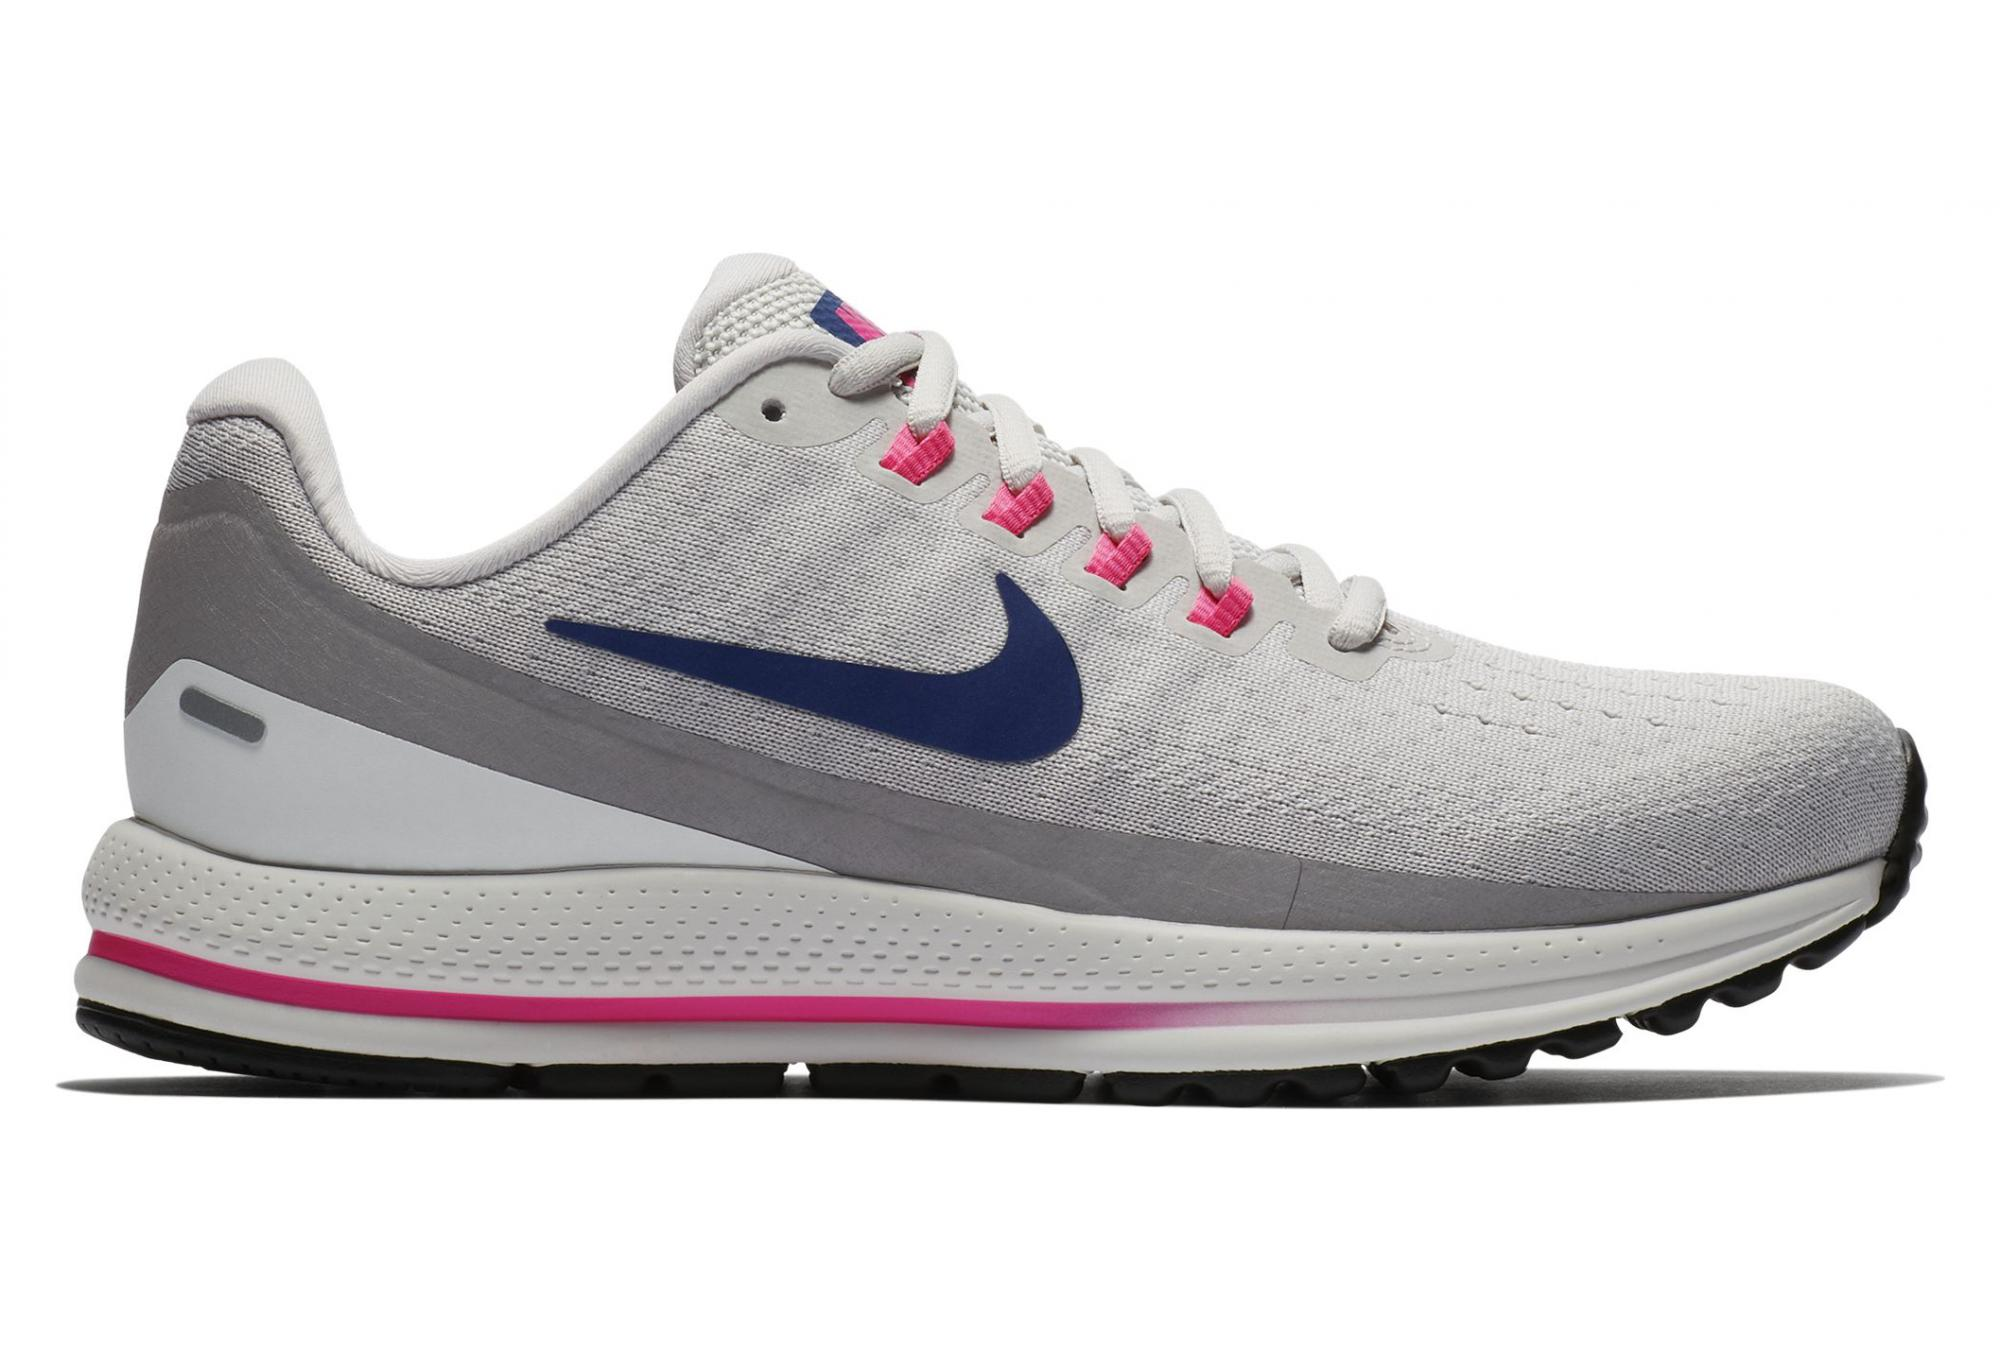 1fb24809aa5b1 Nike Shoes Air Zoom Vomero 13 Grey Blue Pink Women